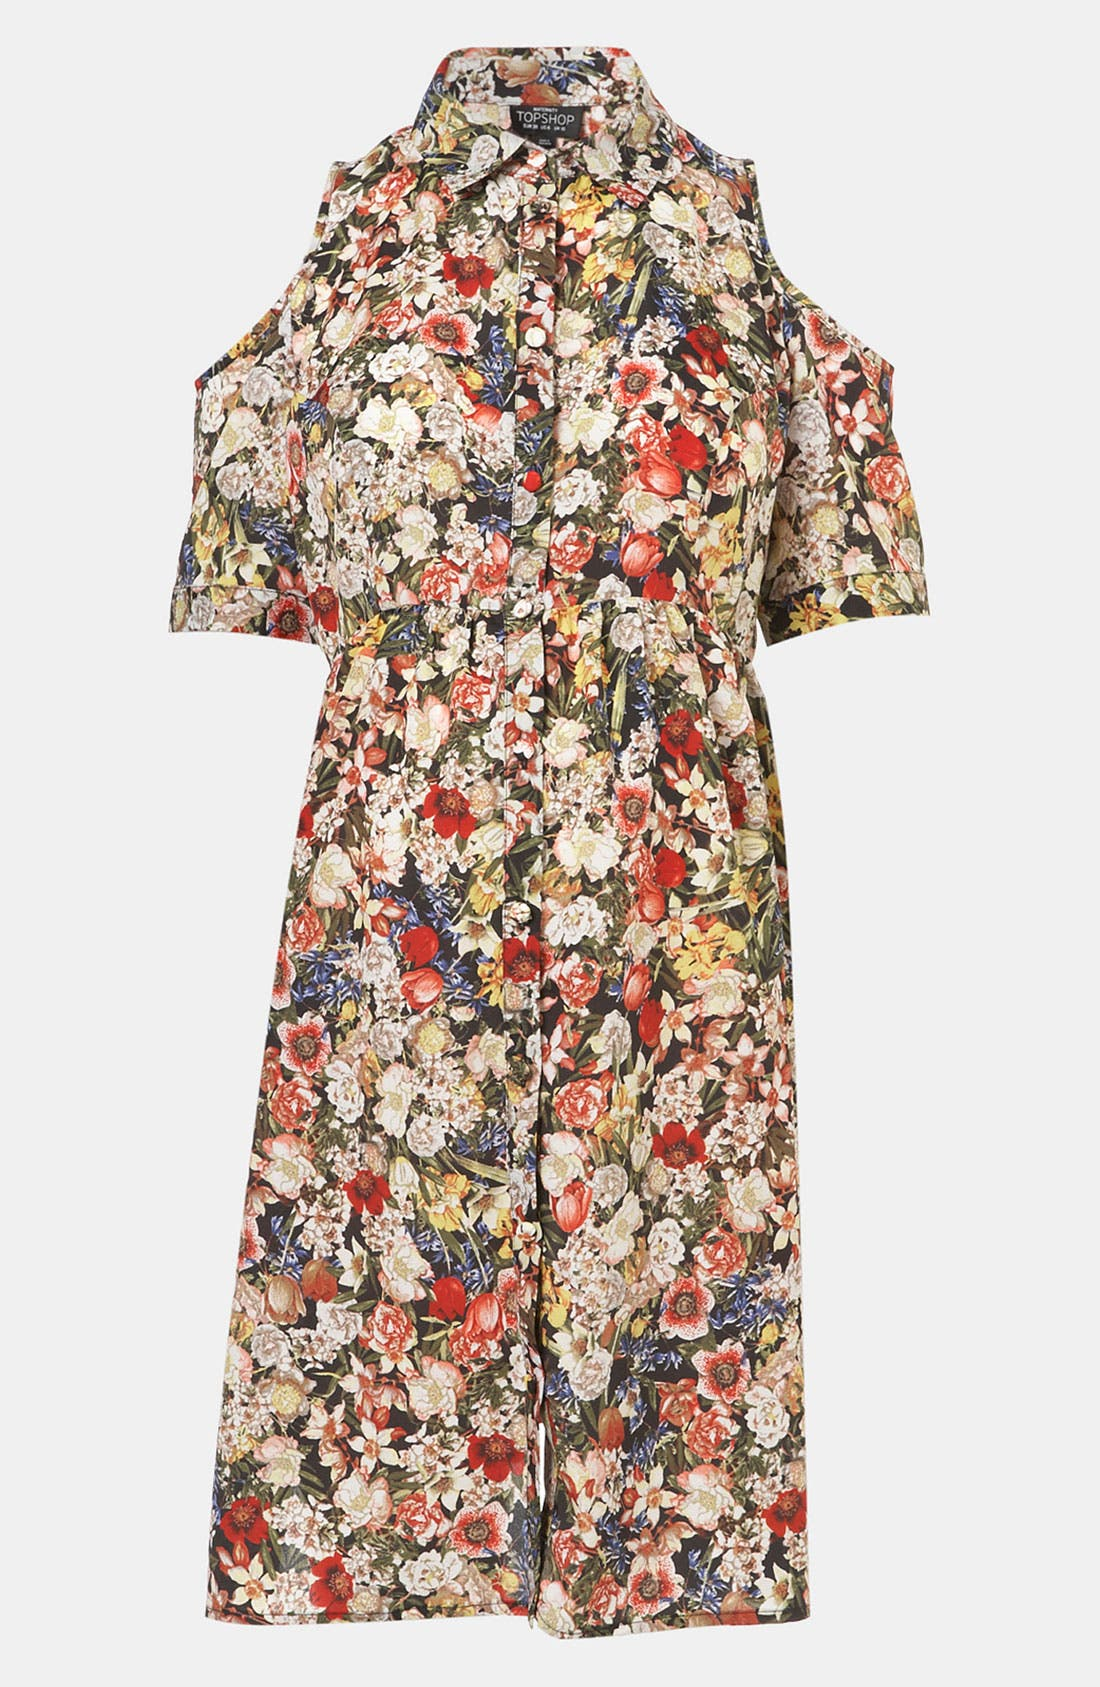 Alternate Image 1 Selected - Topshop Floral Cutout Maternity Shirtdress